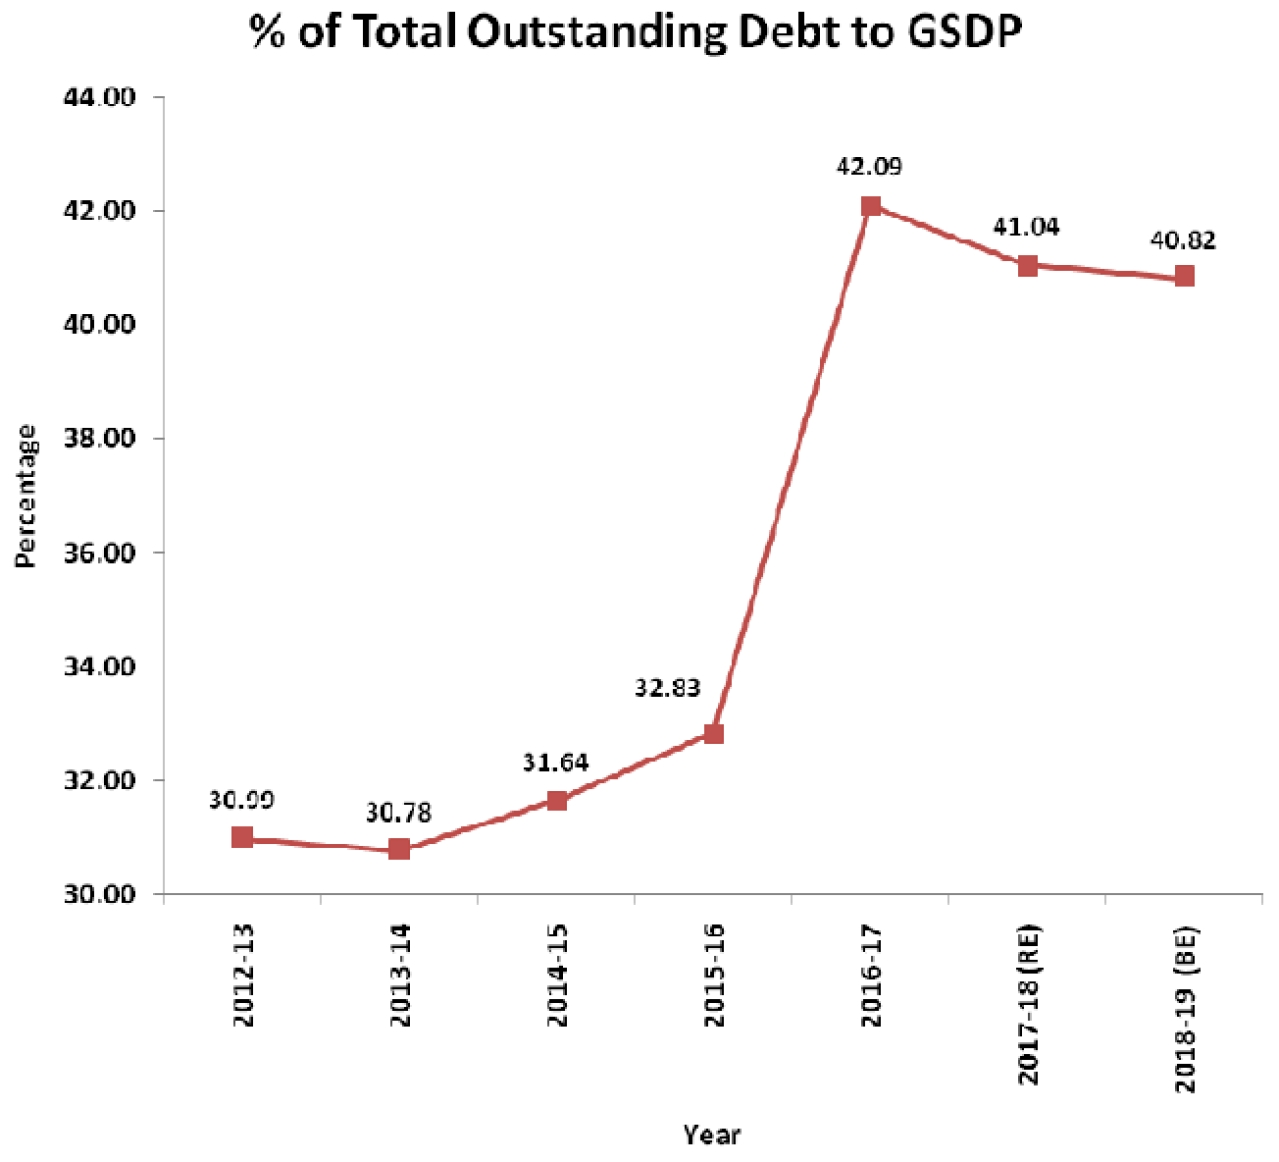 Total outstanding debt to GSDP